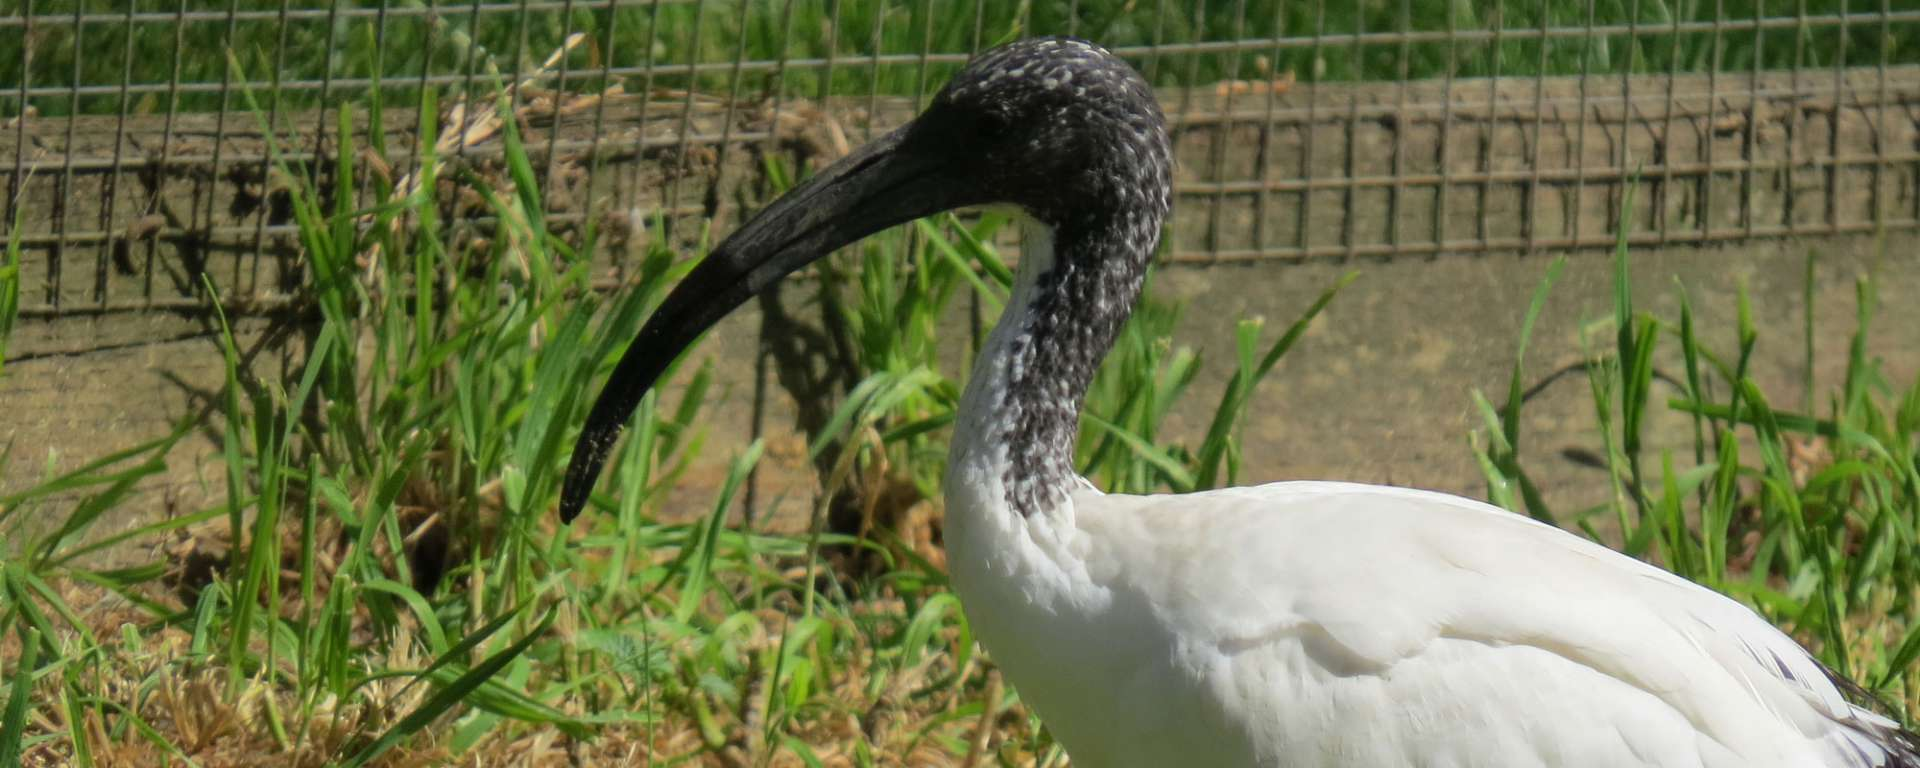 Sacred Ibis by Cheryl Crowley